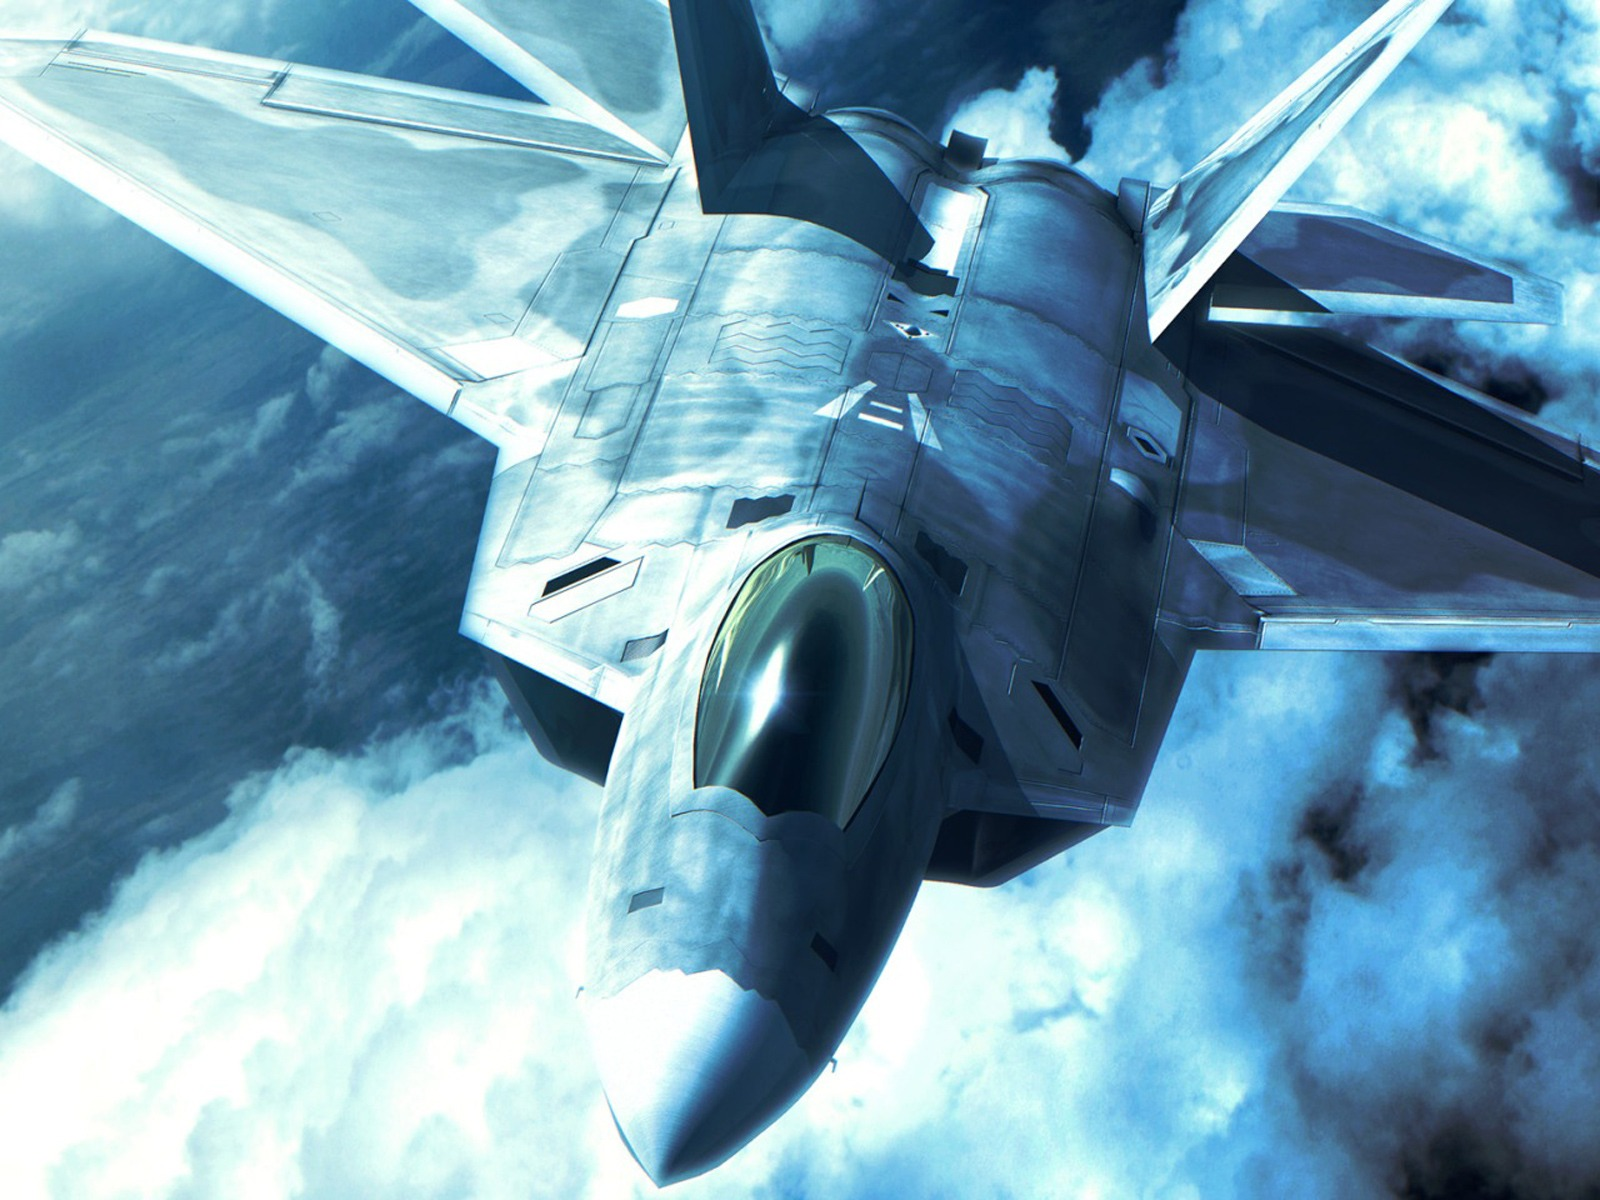 F 22 Raptor Wallpaper Military Aircrafts Planes Wallpapers In Jpg